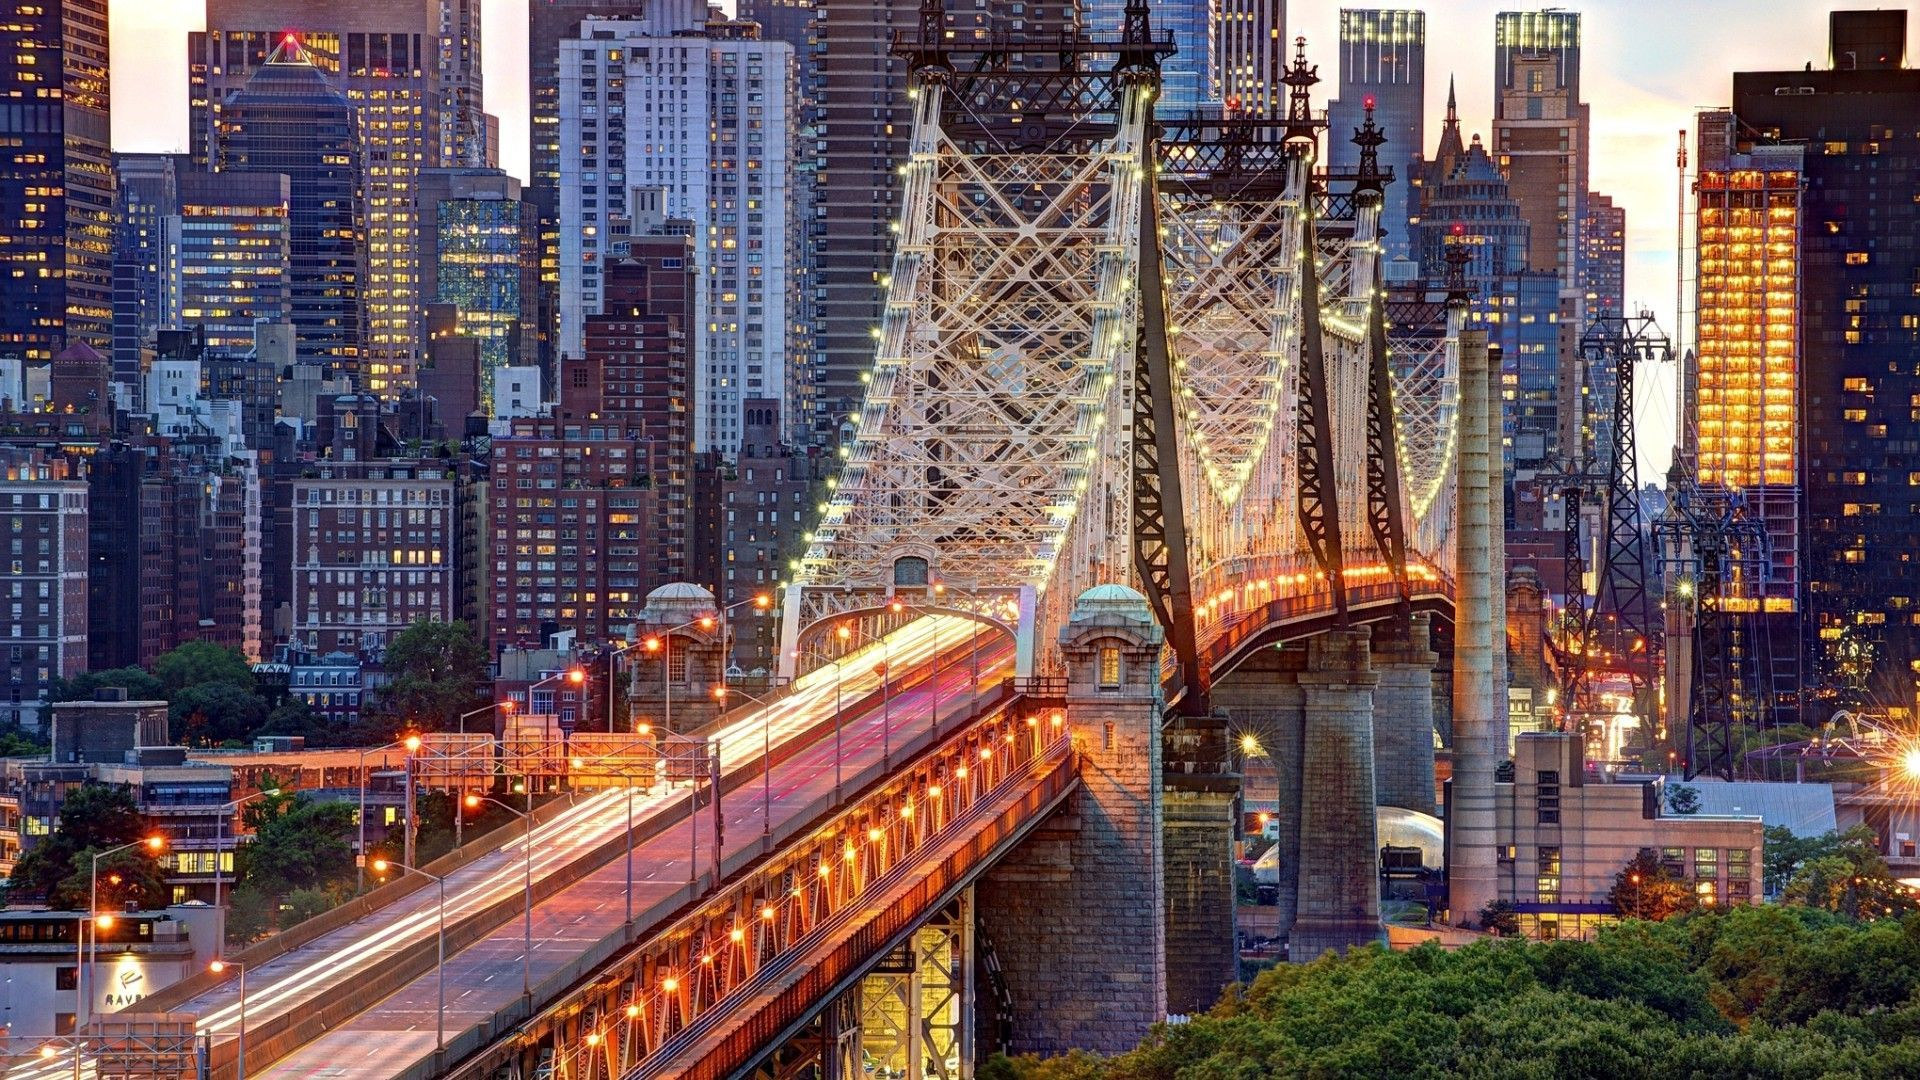 new york wallpapers, city hd wallpaper